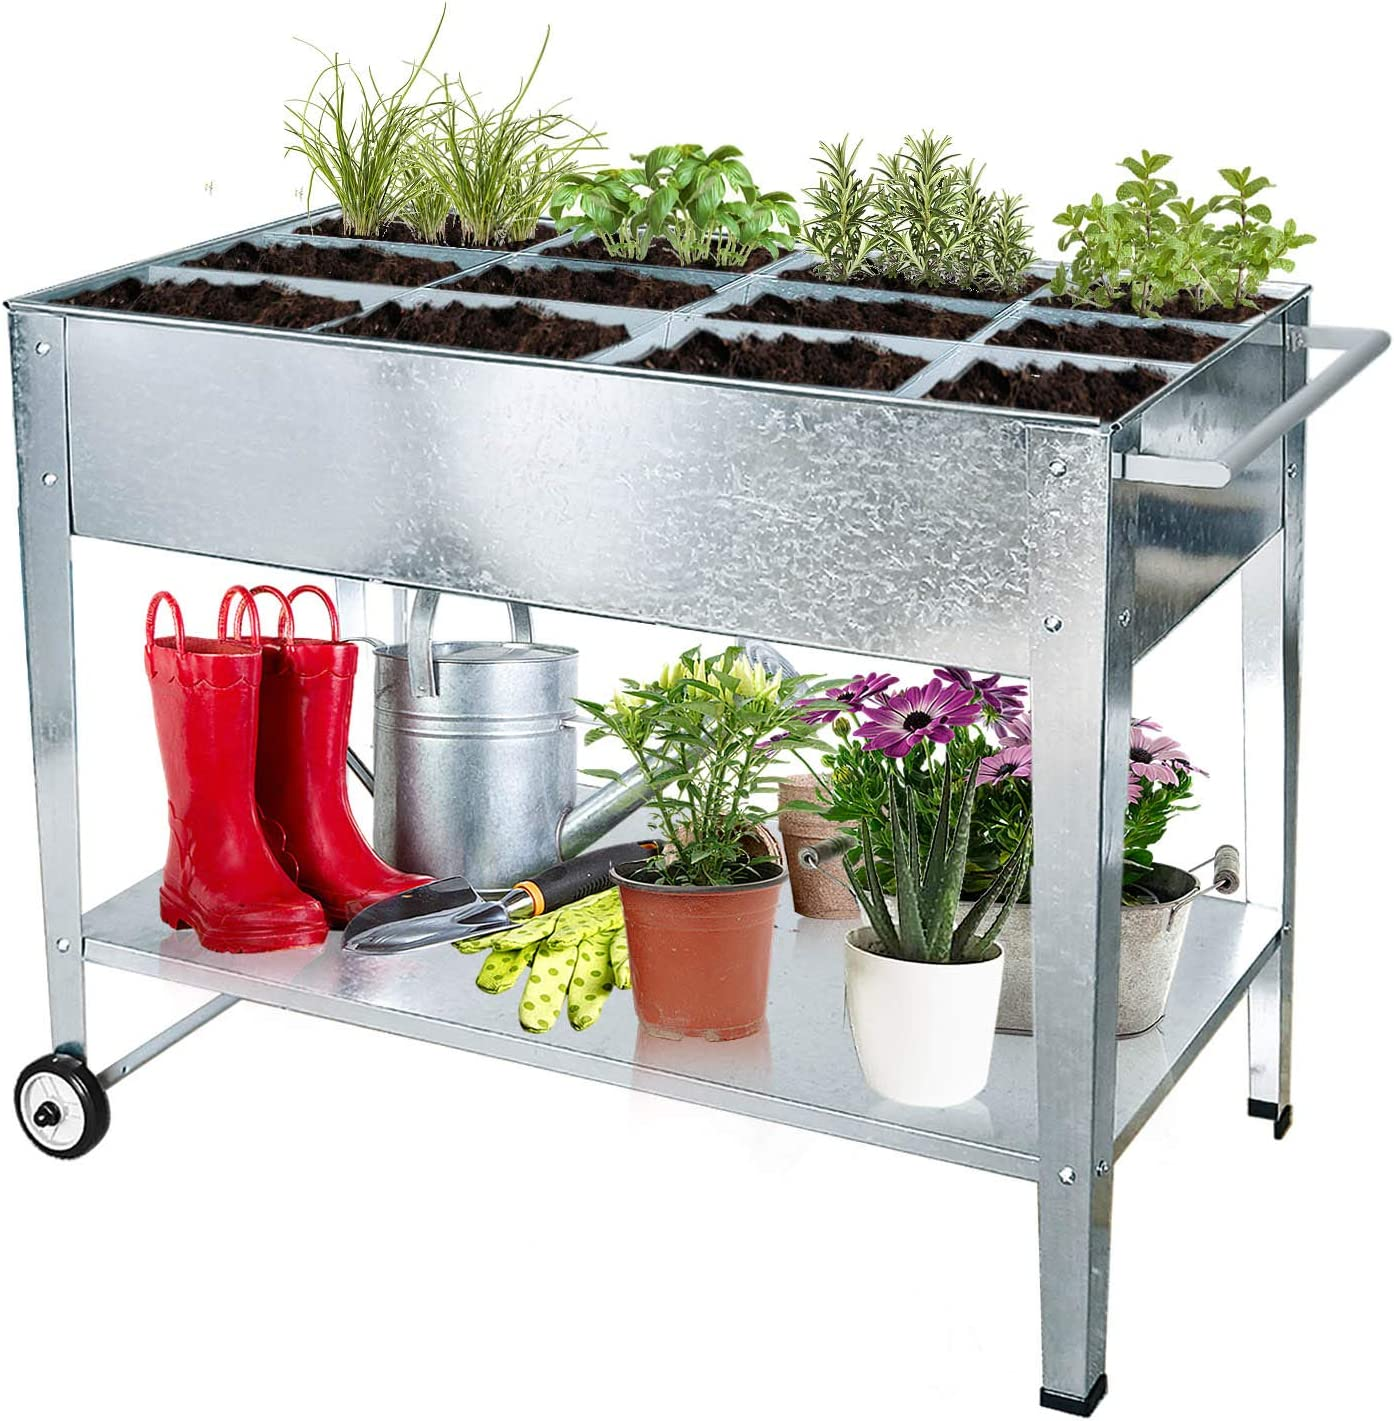 FOYUEE Galvanized Raised Garden Bed Outdoor Herb Apartment Gardening Above Ground Planter Boxes with Legs Portable Elevated Deck Outdoor Home Balcony